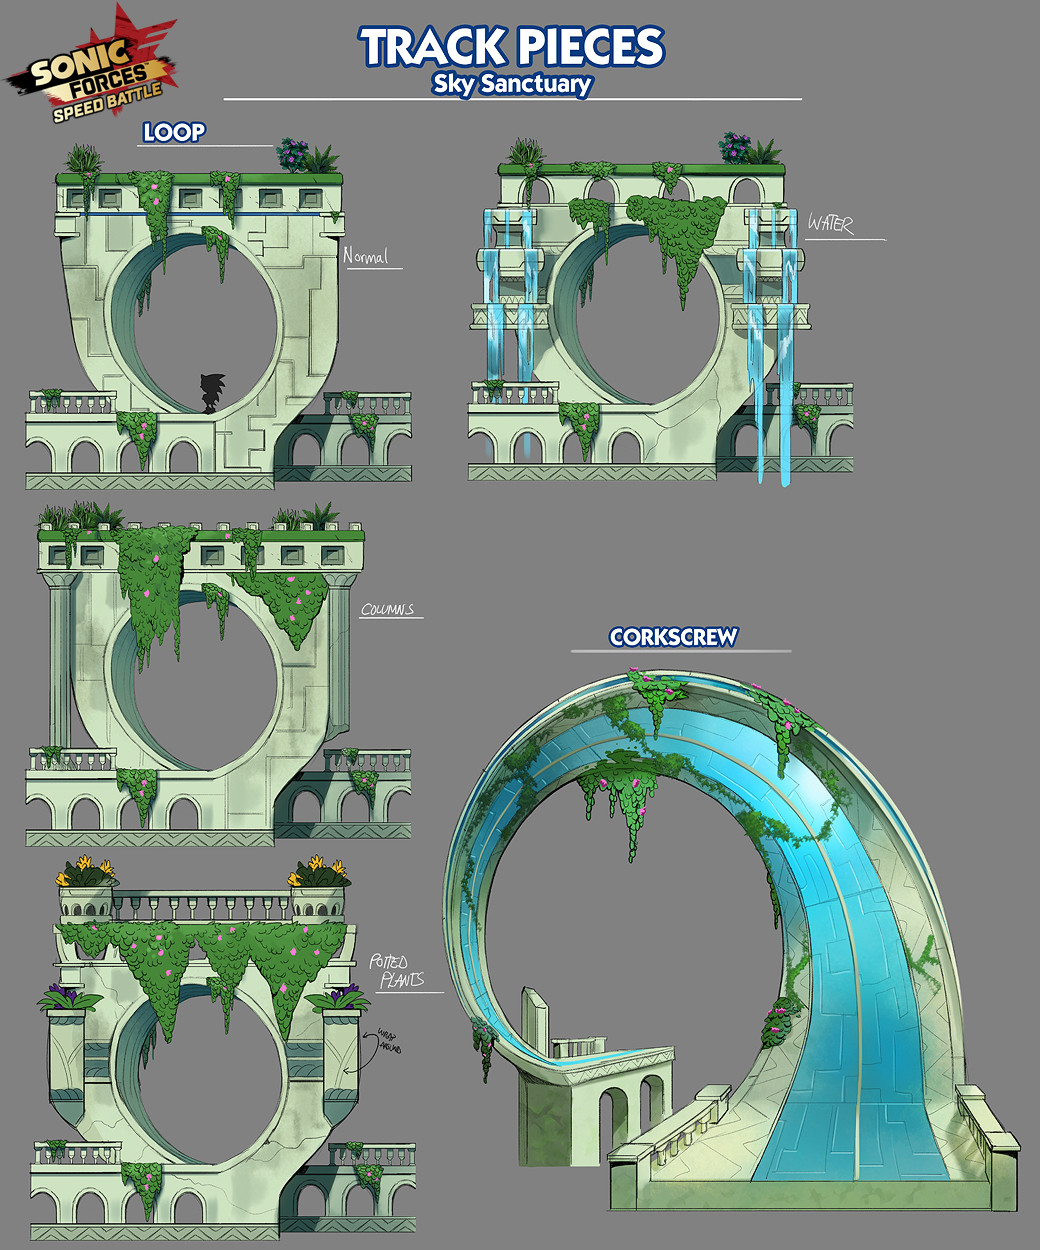 Sky Sanctuary Track Loop Concepts for Sonic Forces: Speed Battle, Copyright SEGA 2017